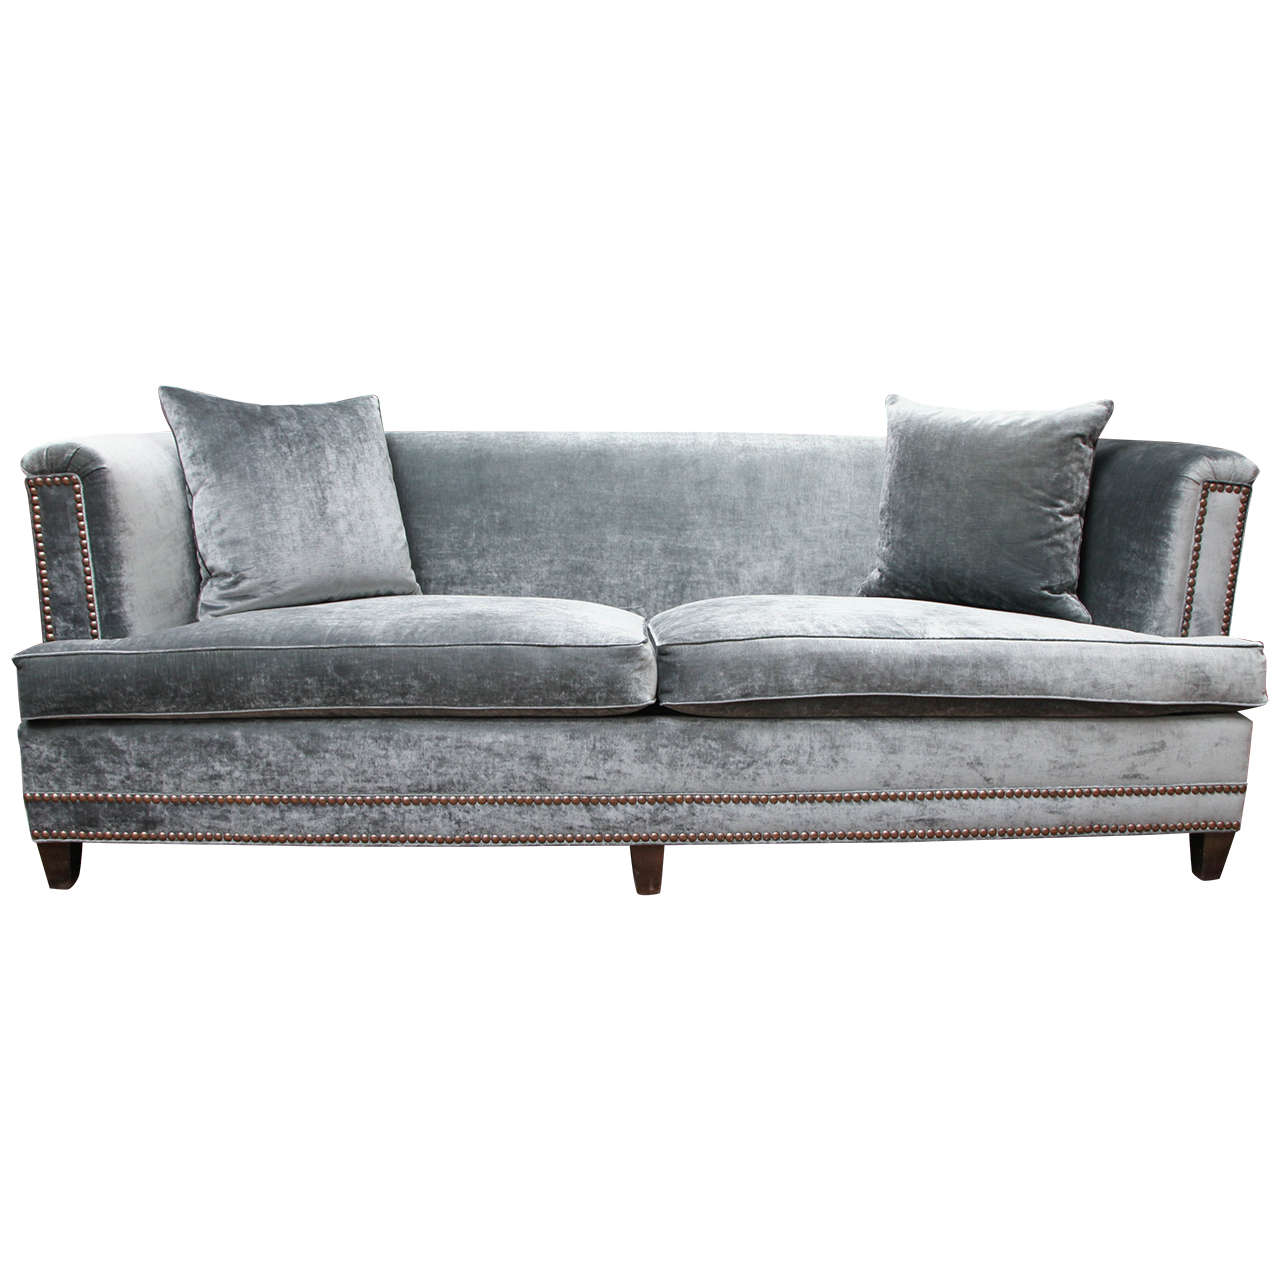 Velvet sofa at 1stdibs for Divan and settee